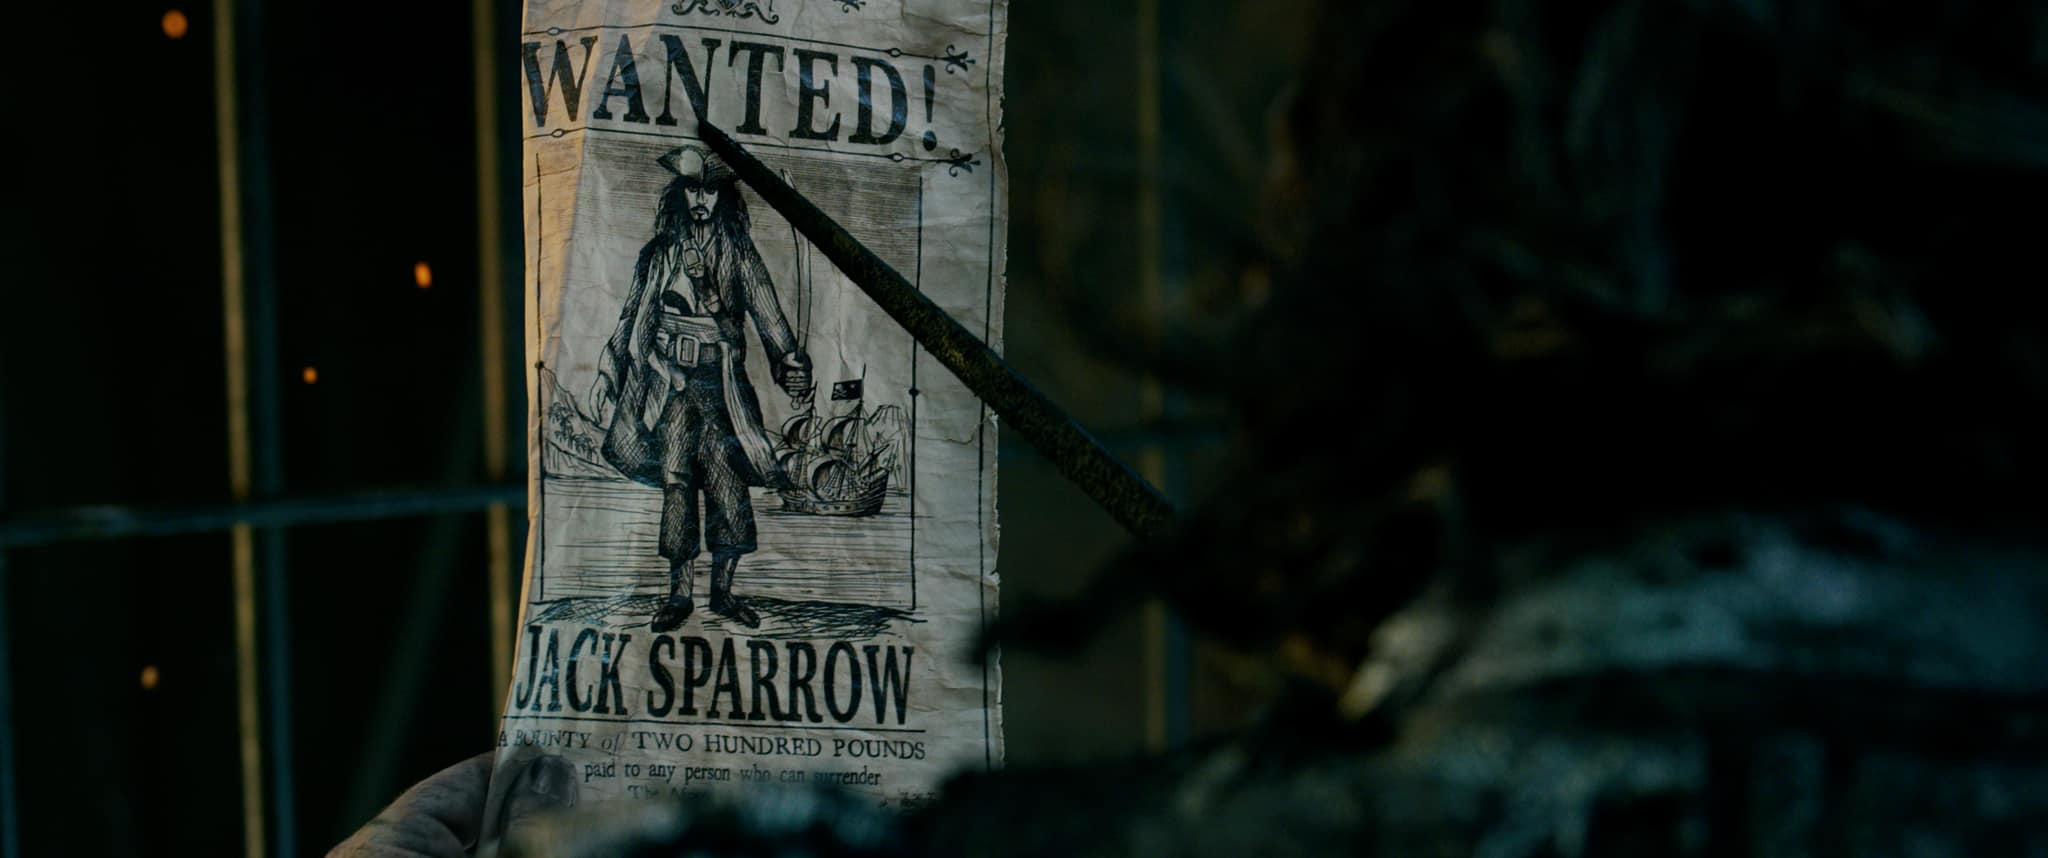 Teaser Trailer for Pirates Of The Caribbean: Dead Men Tell No Tales